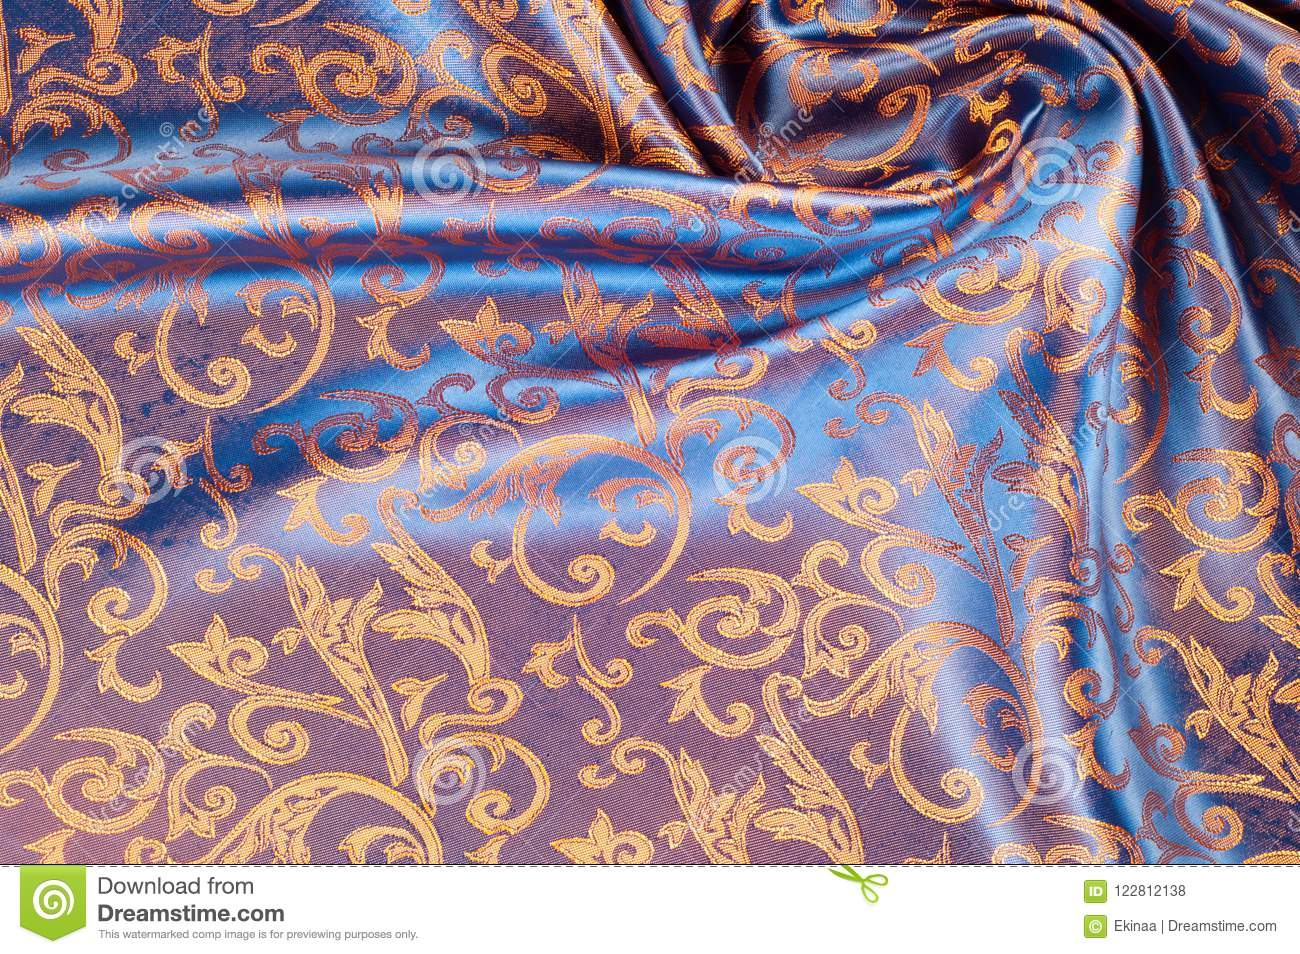 328e156526f The texture of the silk fabric. Yellow Orange, Gold, Almond, Neon Carrot, a  fine, strong, soft, lustrous fiber produced by silkworms in making cocoons  and ...